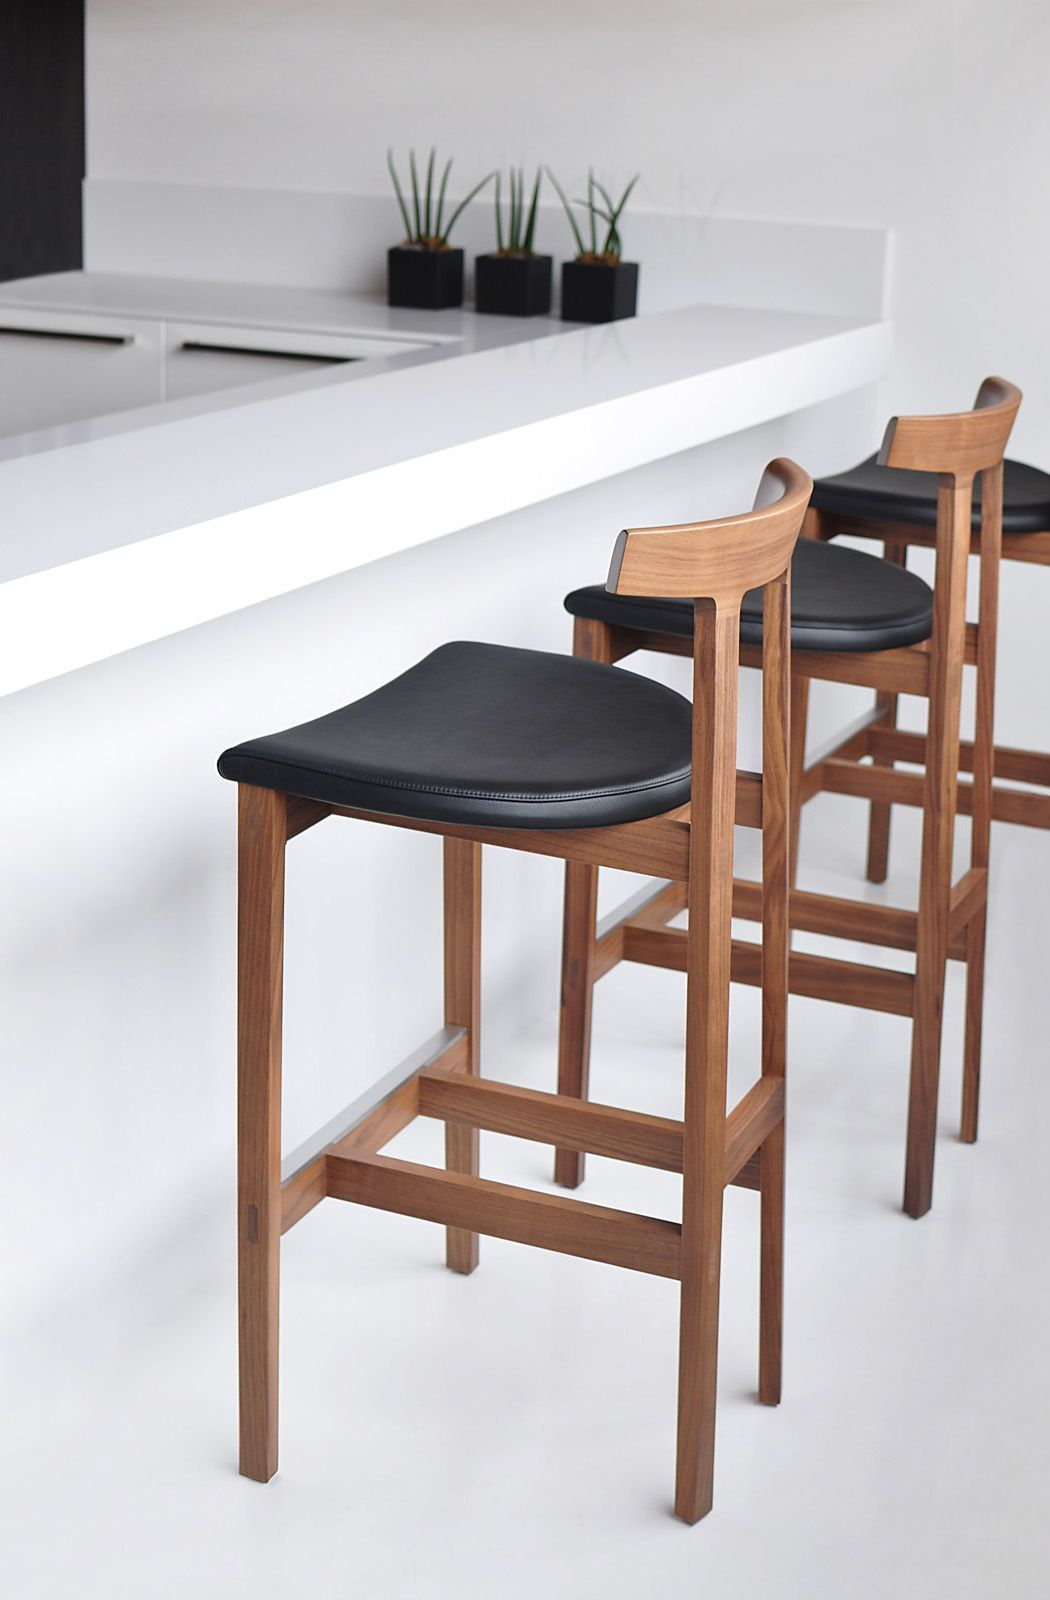 Best Kitchen Stools Find The Best Ideas And Kitchen Stool Designs For Your Newly